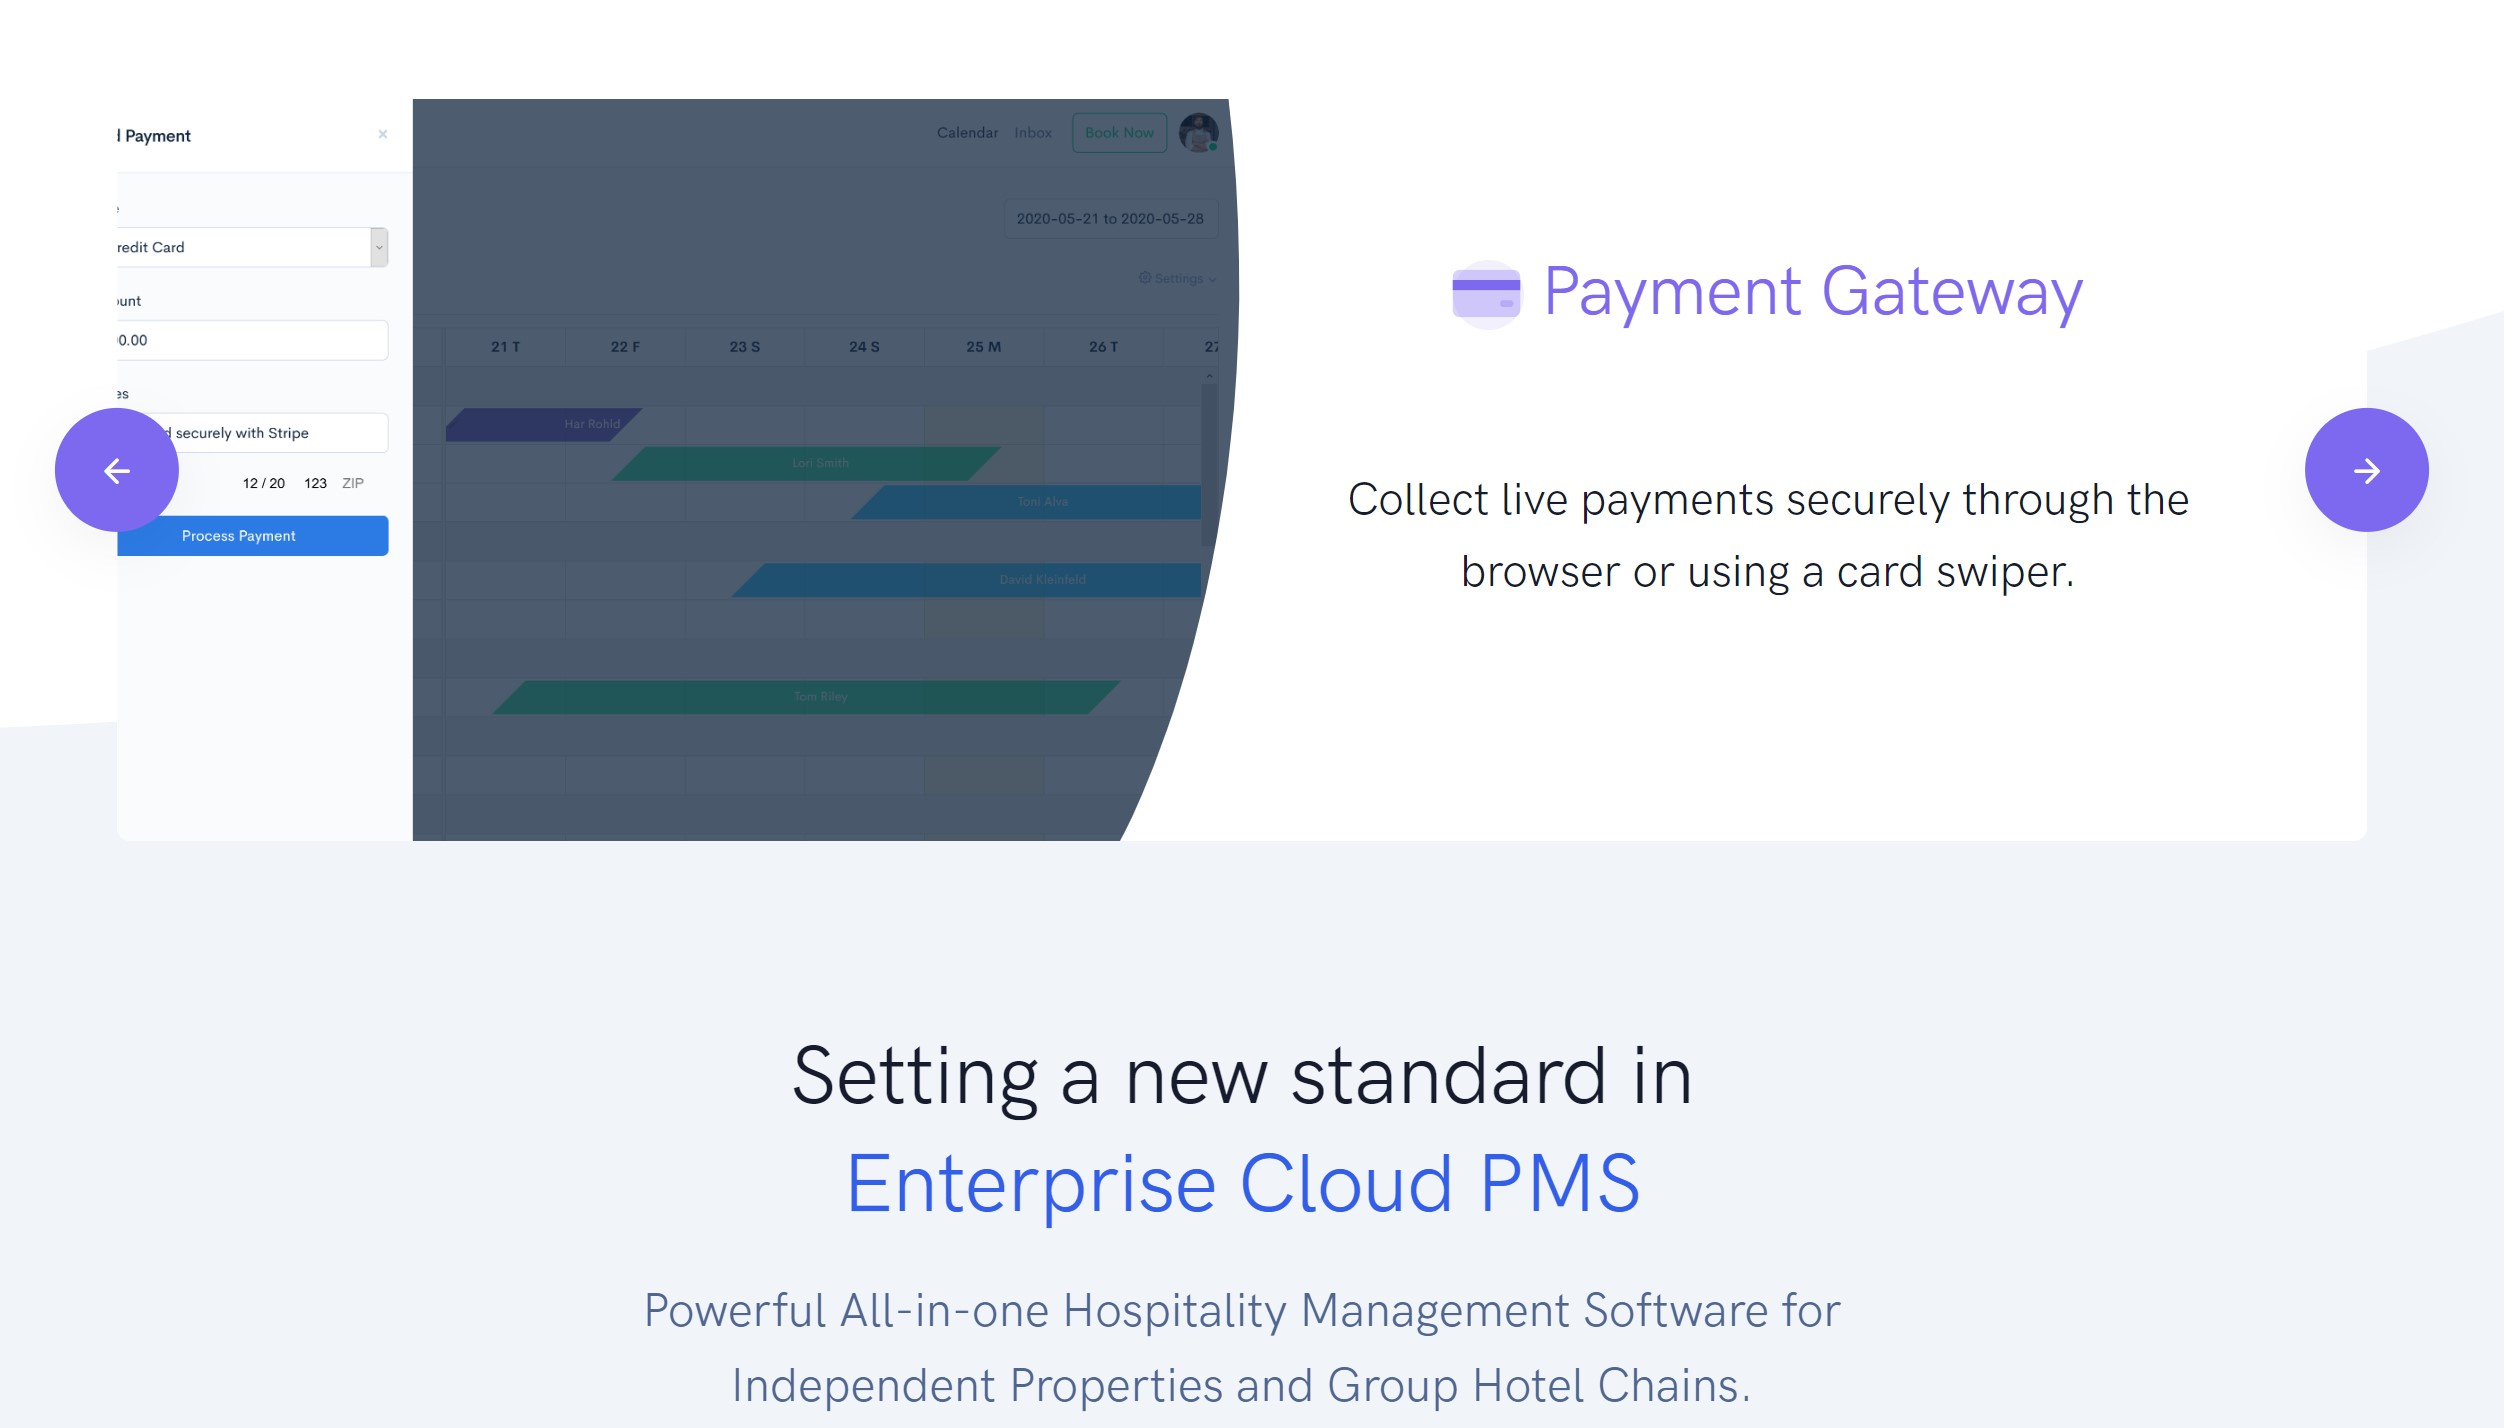 Hotel Payment Gateway Process live payments through the browser or using a card swiper. Your payment data is stored safely with your processor.